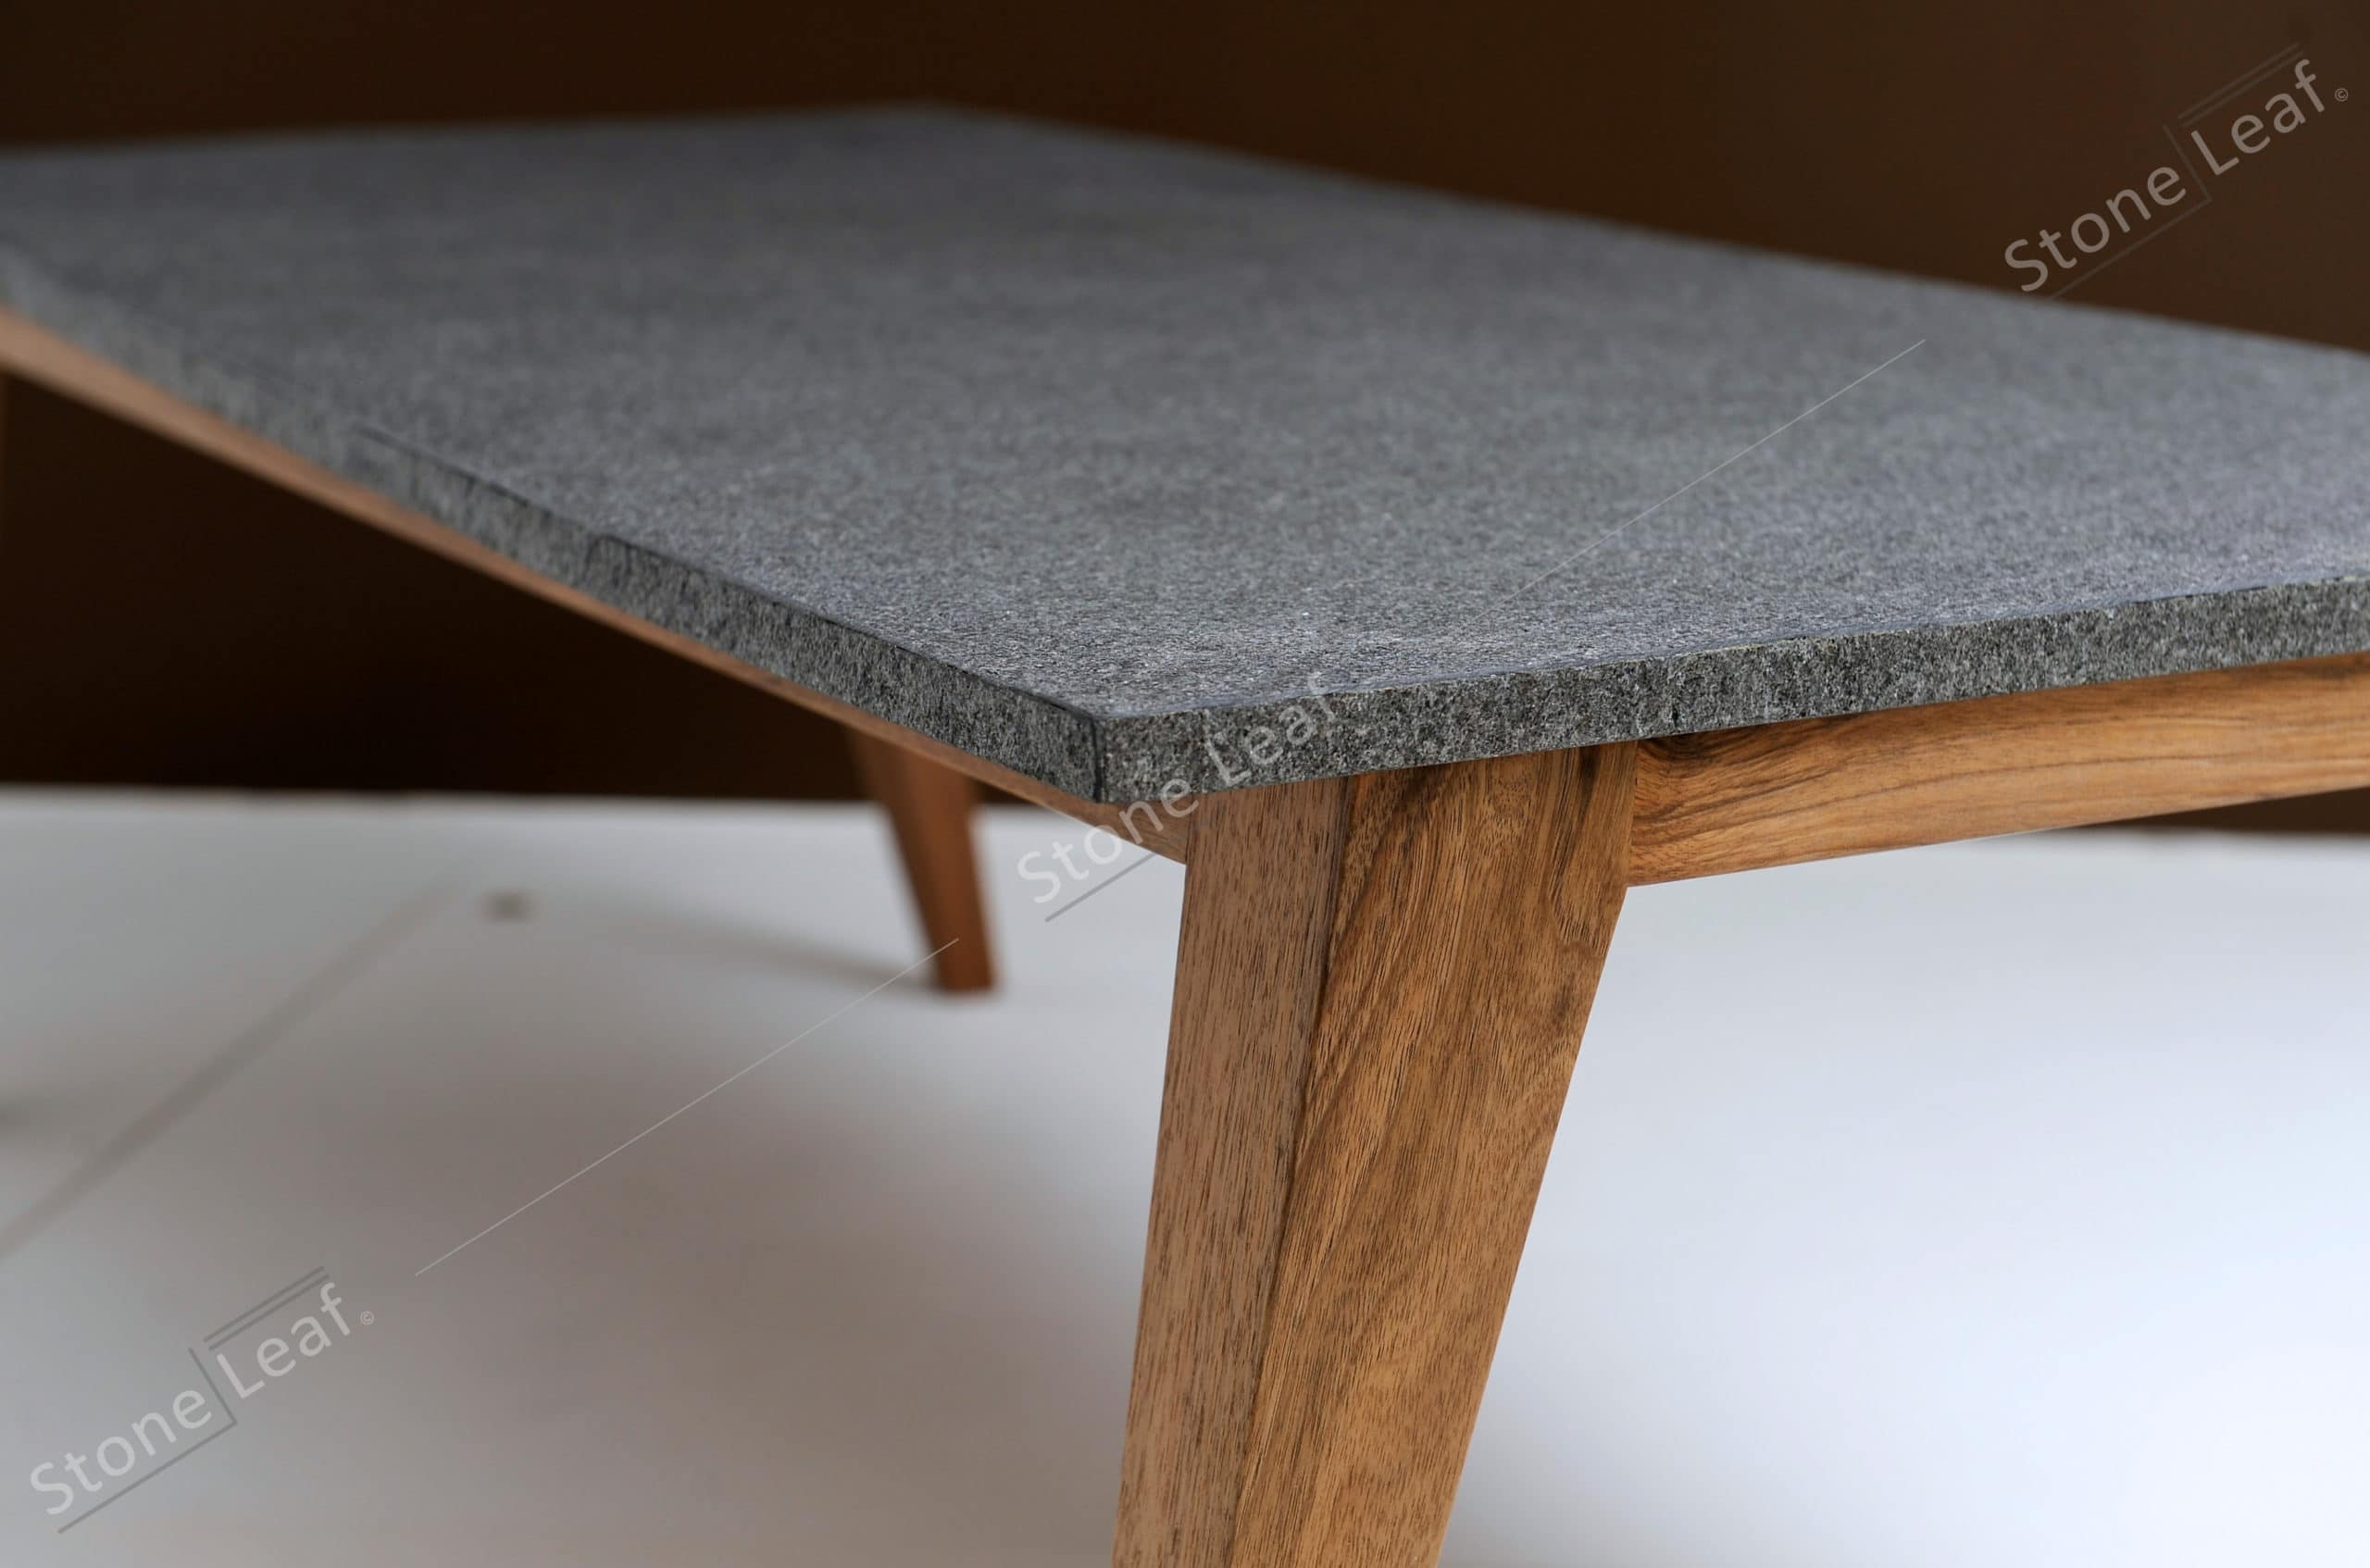 100% natural stone sheets on a table